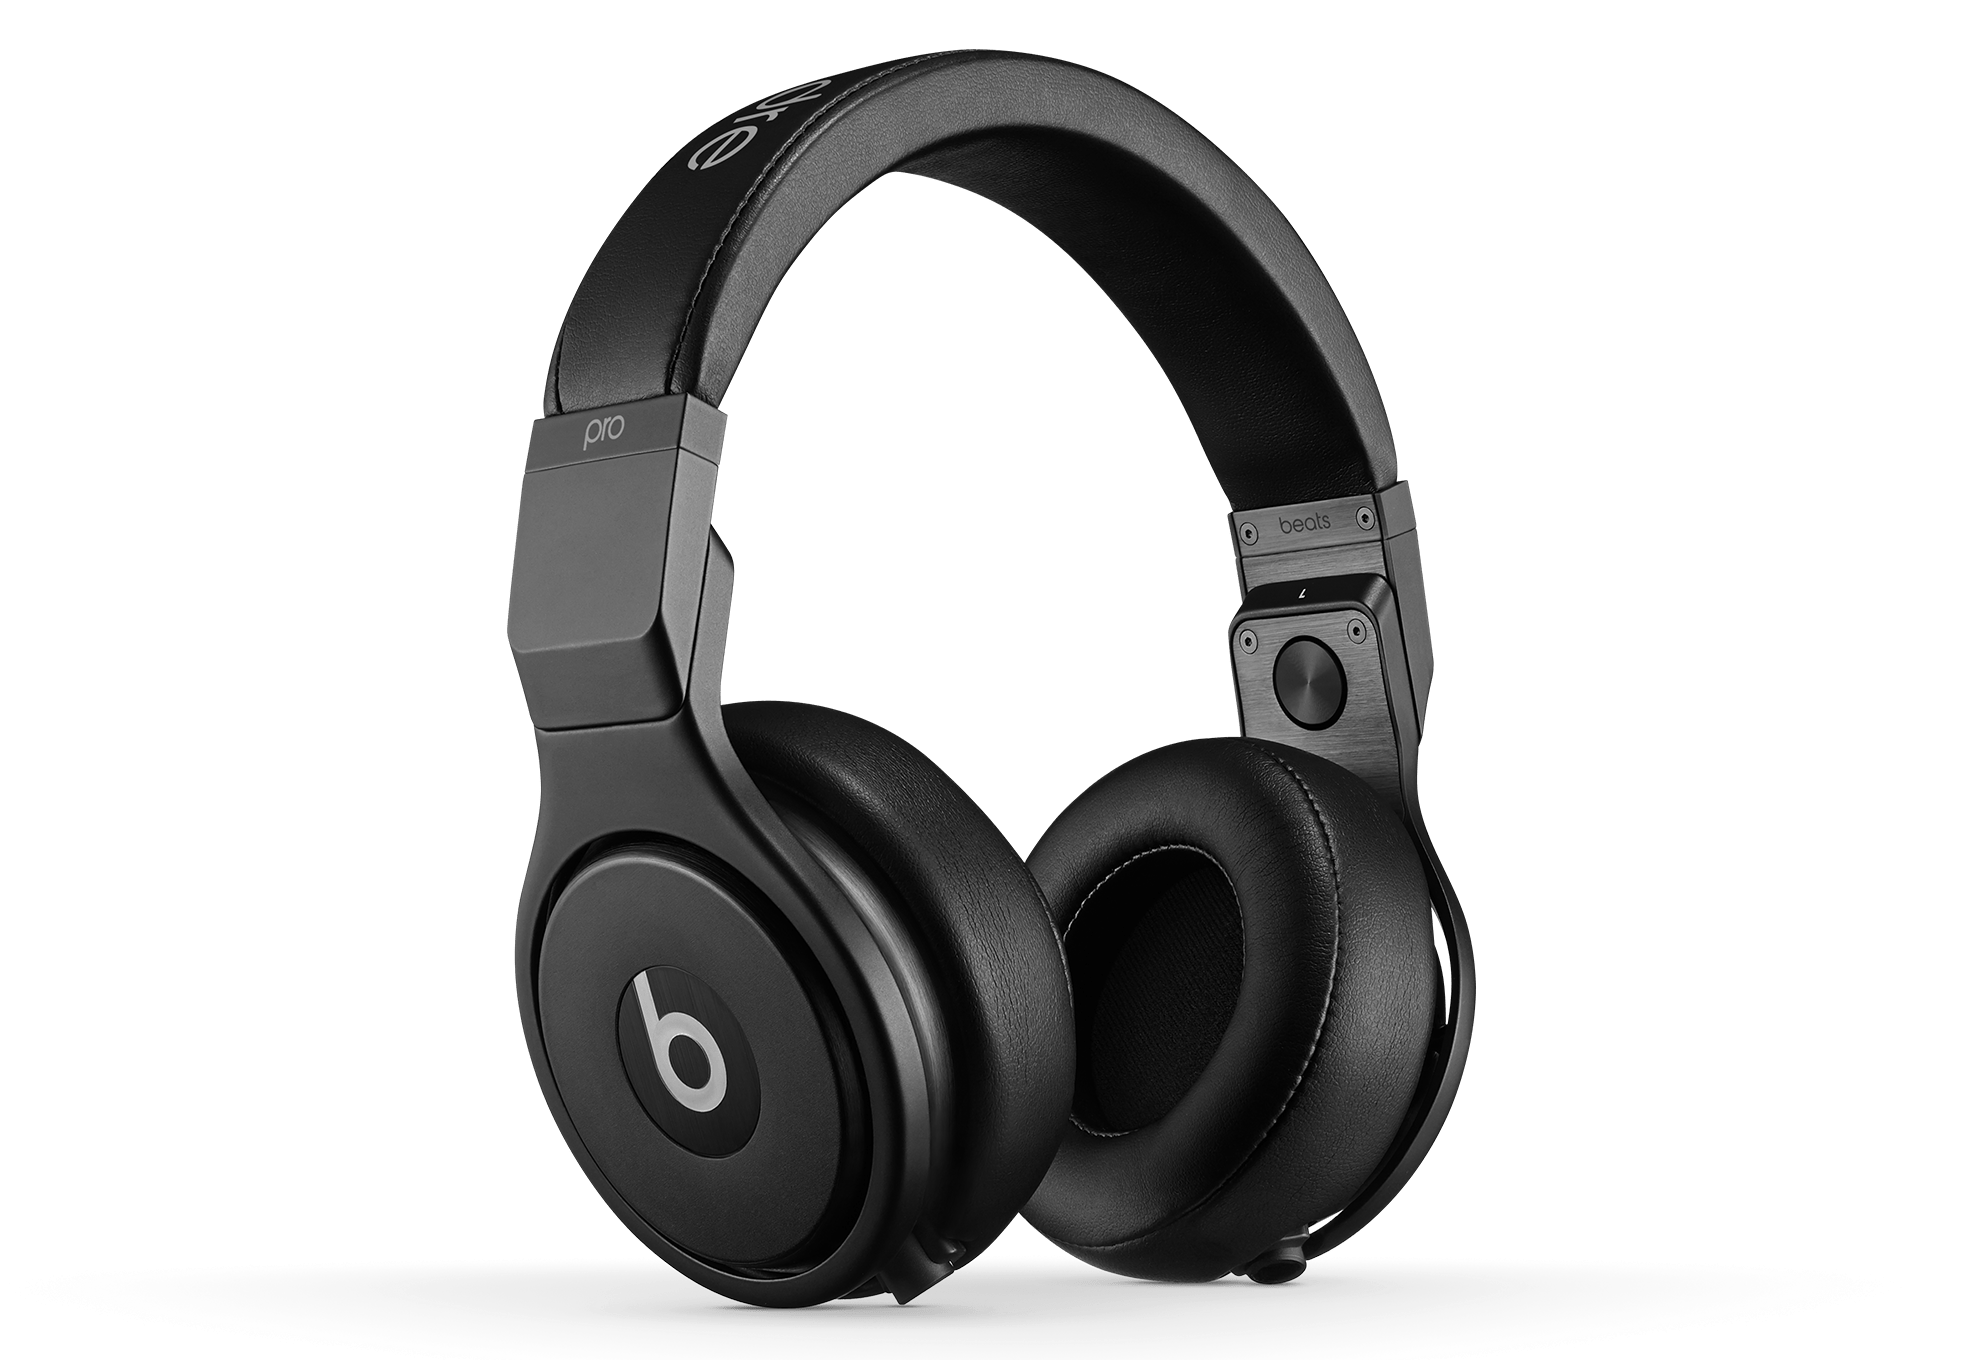 image transparent stock Beats pro by dre. Beets drawing headset